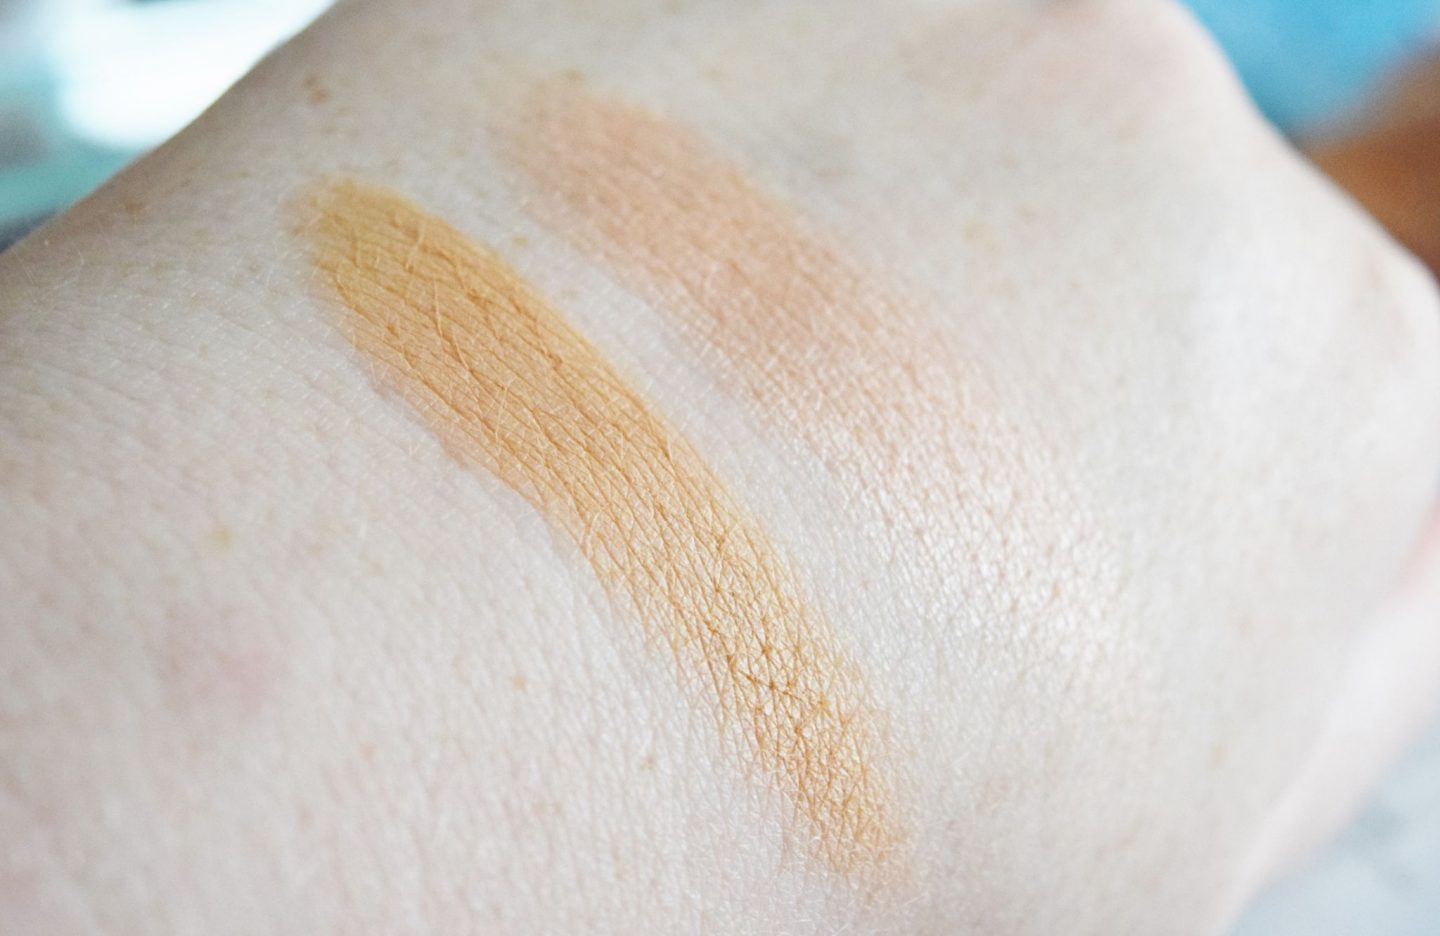 Kiko Fall 2.0 Duo Bronzer in 01 Bright Life swatch